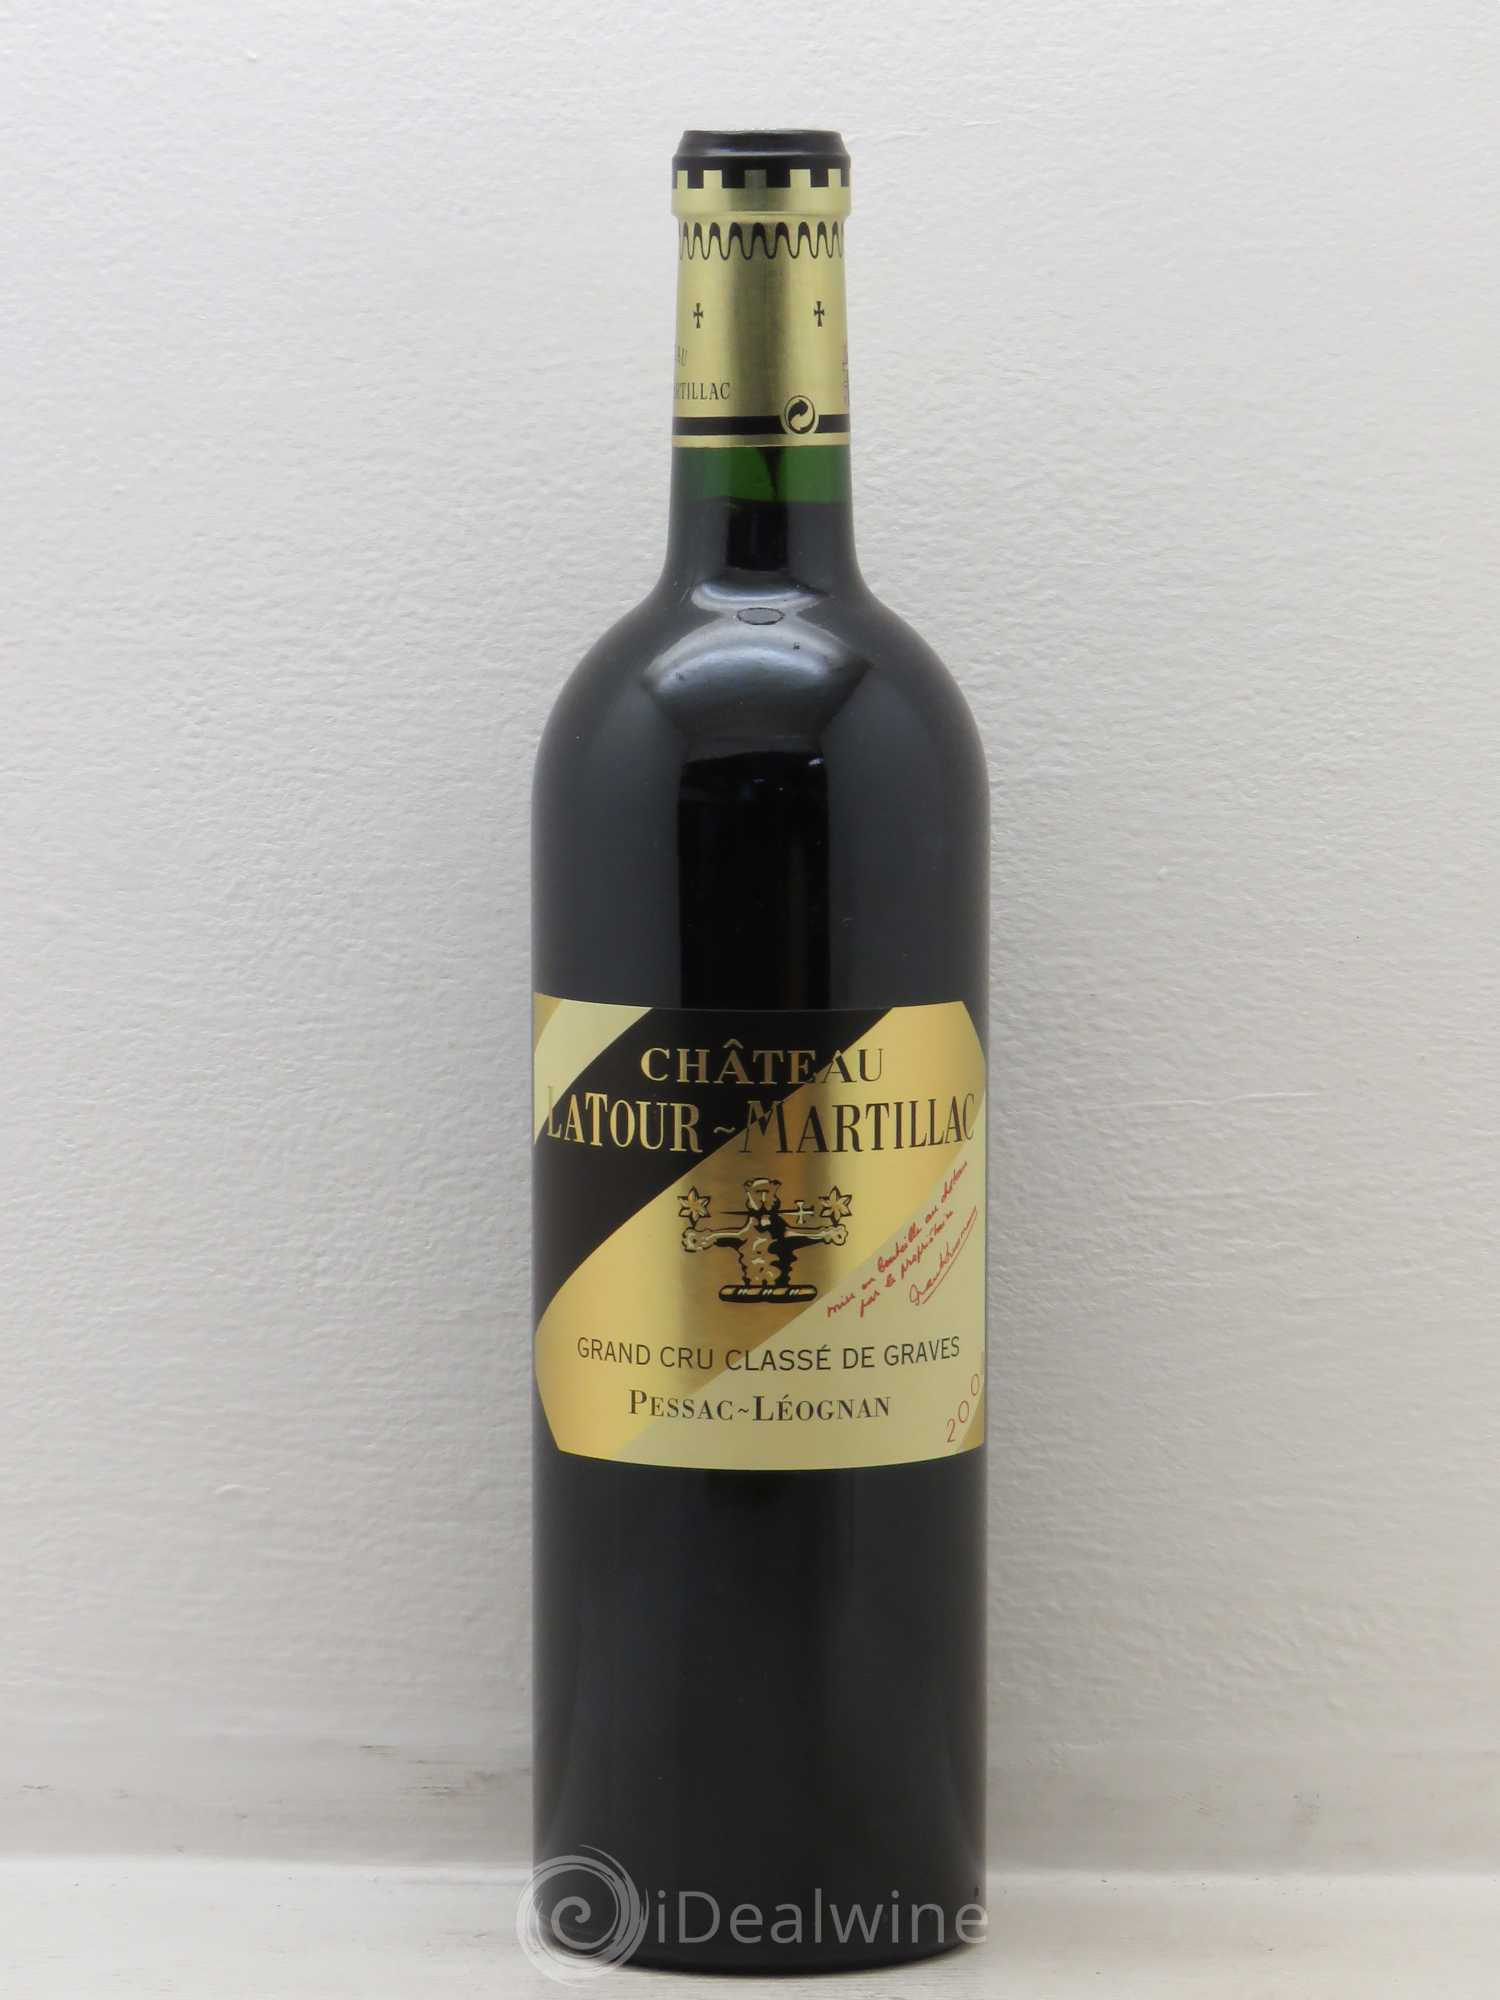 acheter ch teau latour martillac cru class de graves 2008 lot 7049. Black Bedroom Furniture Sets. Home Design Ideas